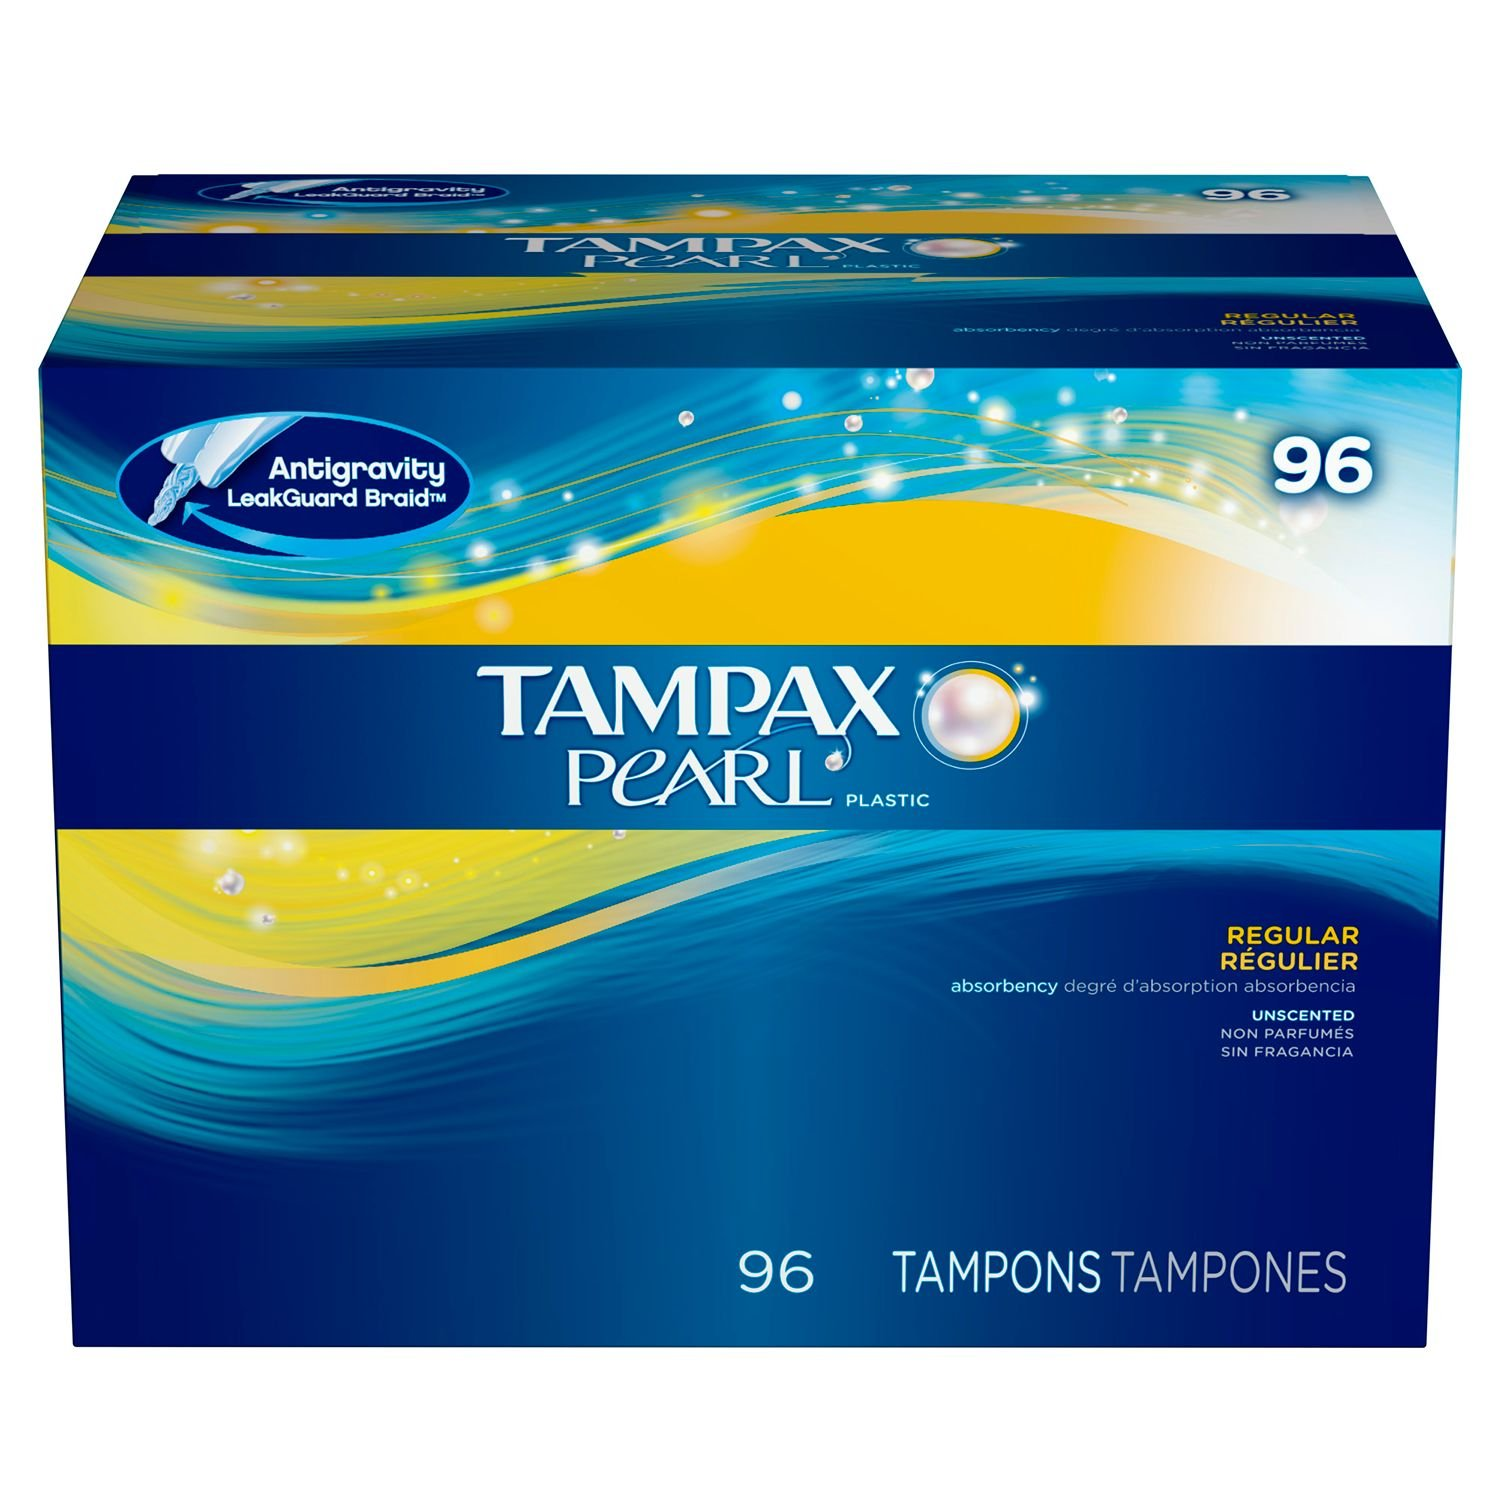 Tampax Pearl Plastic, Antigravity LeakGuard Braid, Regular Absorbency Unscented Tampons, 96 Count